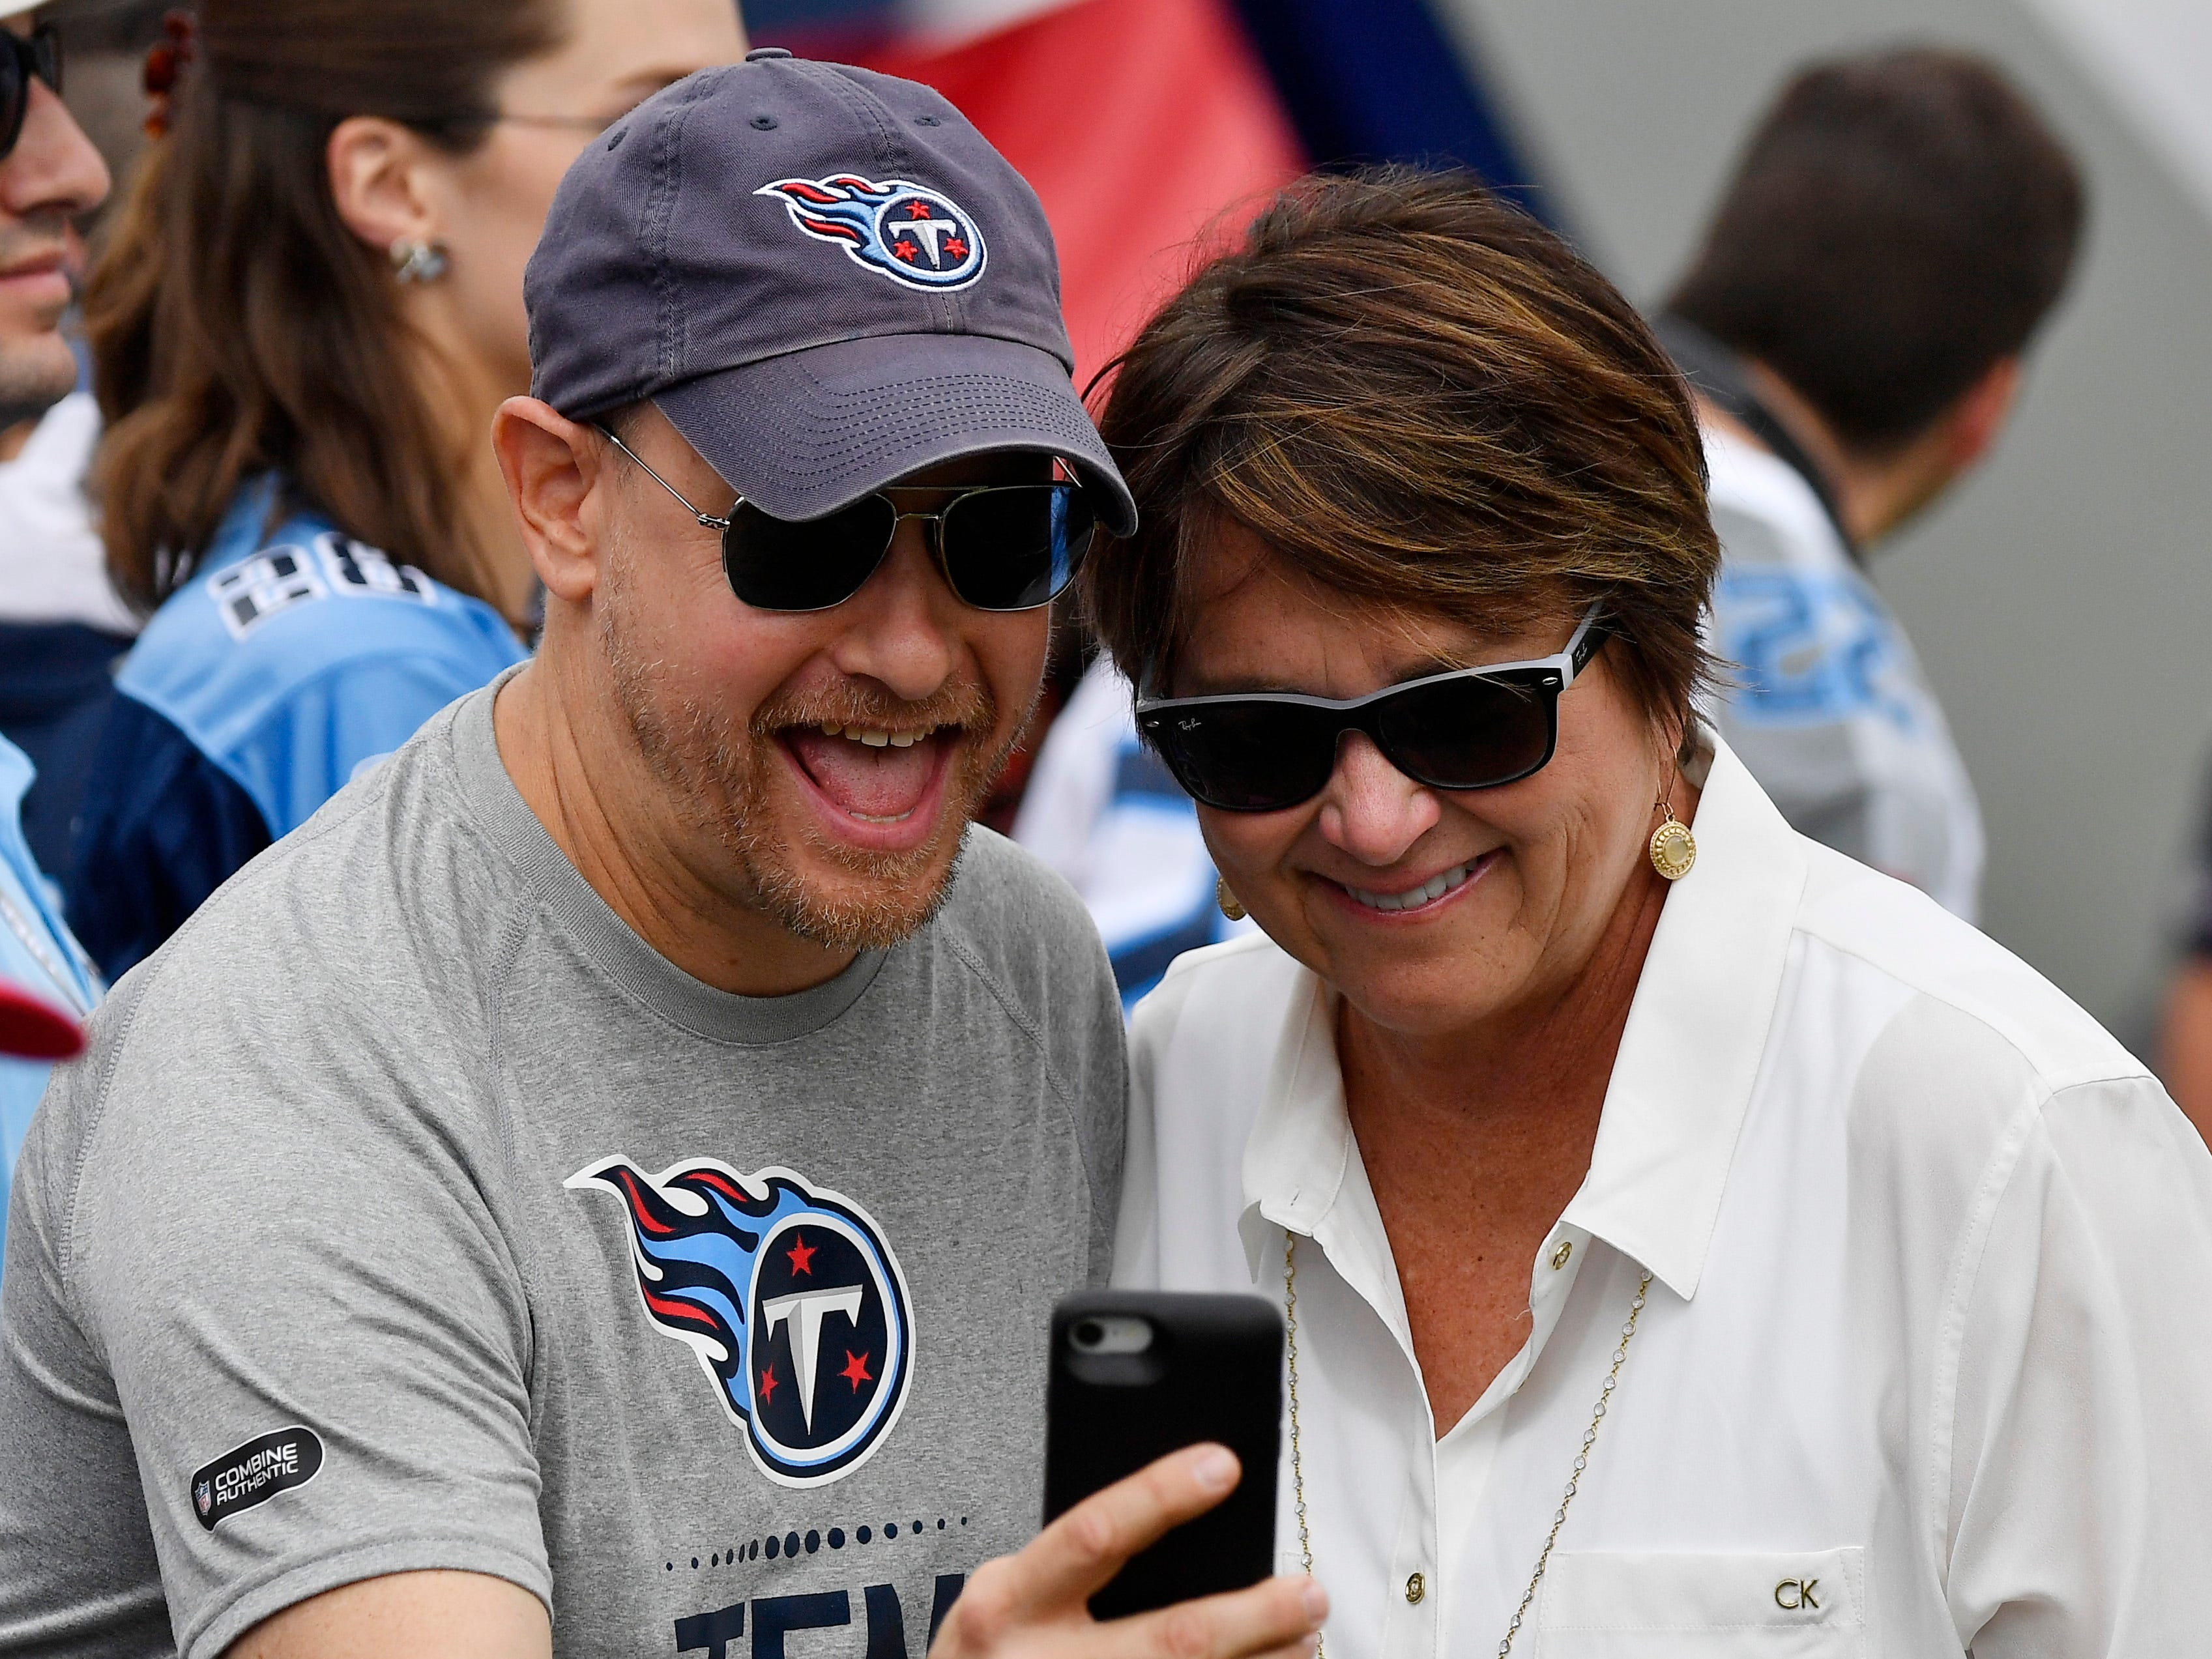 Titans owner Amy Adams Struck takes a selfie with a fan before the game at Nissan Stadium Sunday, Sept. 16, 2018, in Nashville, Tenn.